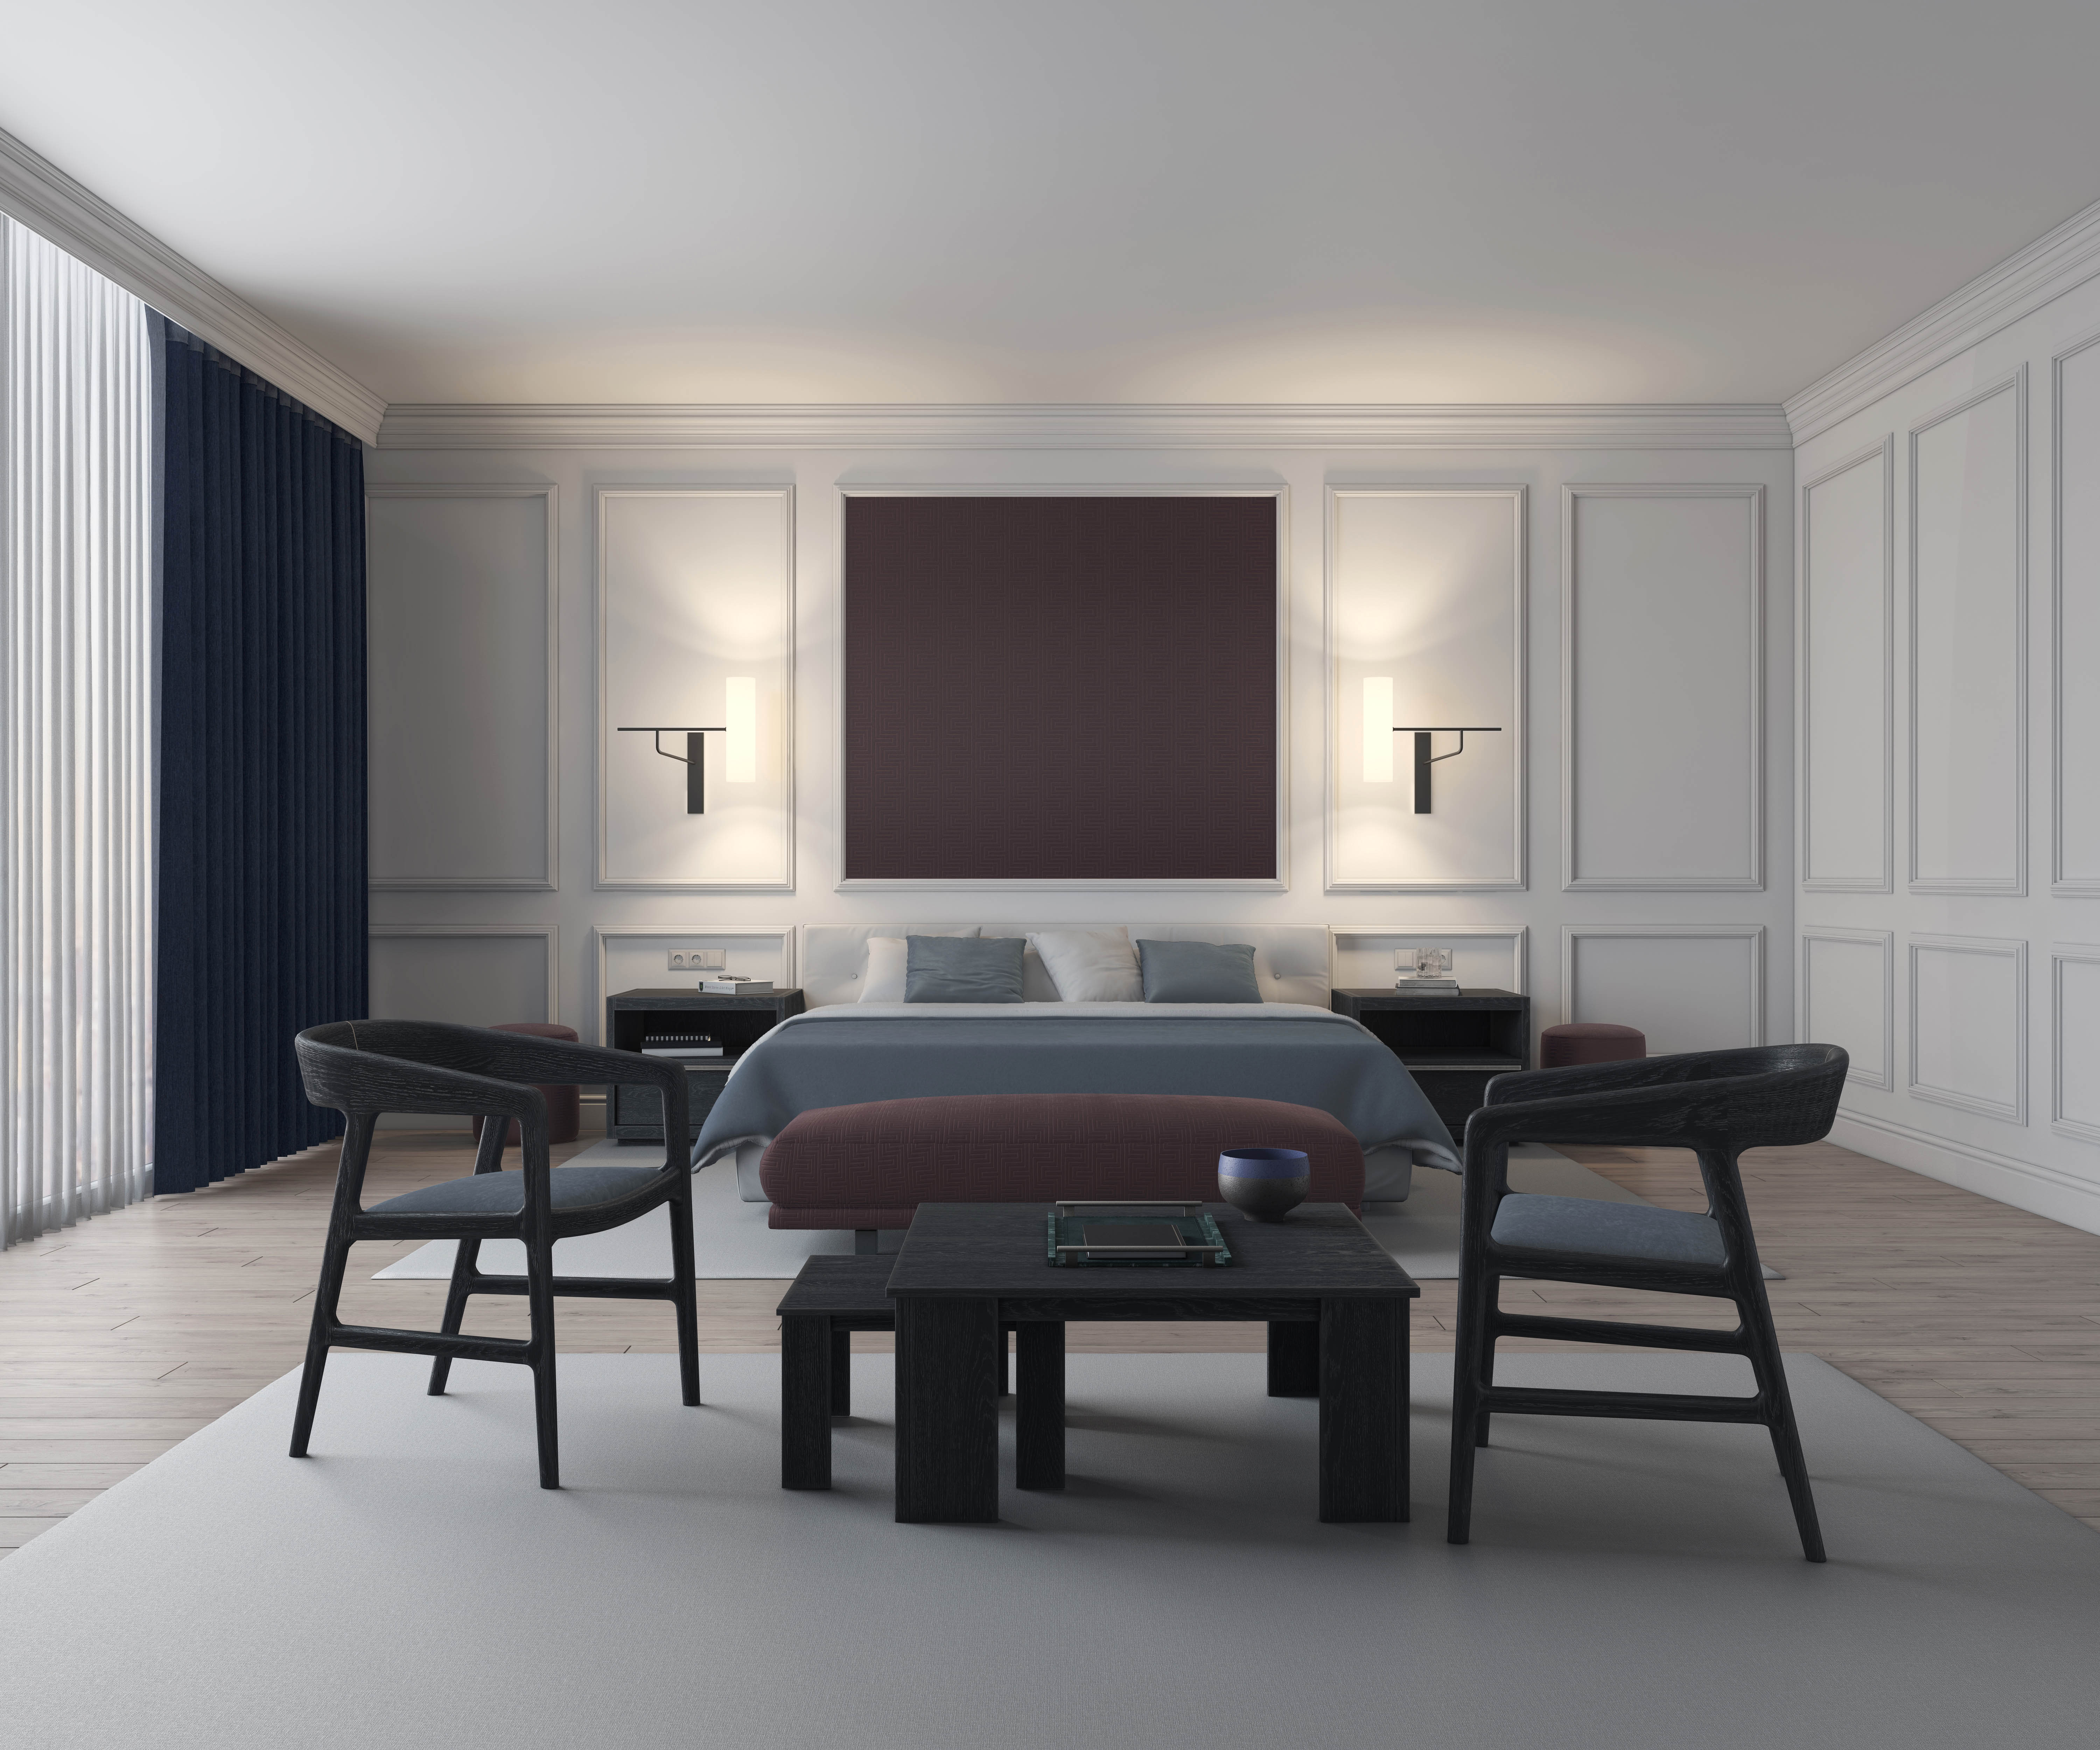 inherently fire retardant fabrics upholstery in a 3D rendered hotel room scene